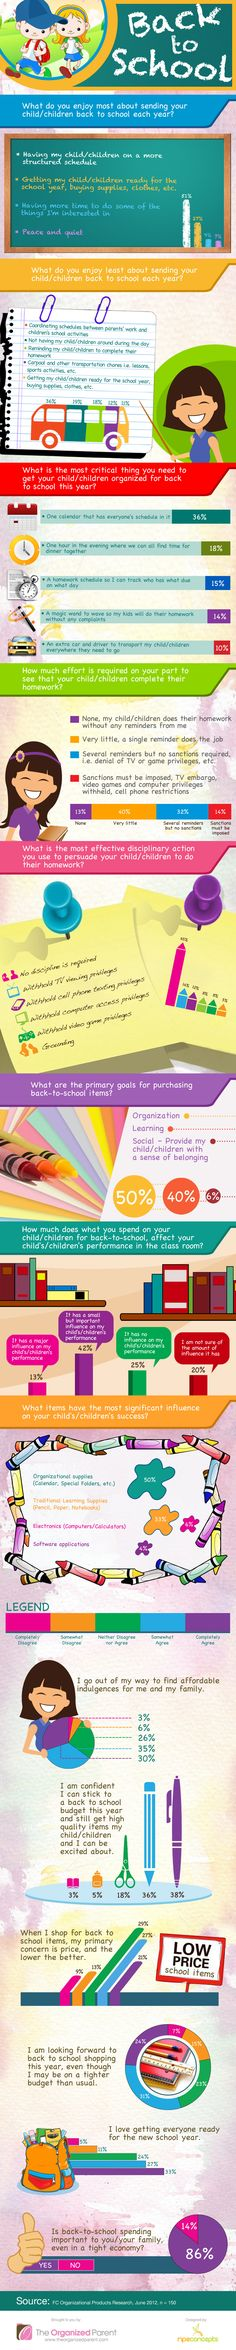 Back to School Infographic: What do you enjoy most about    sending your child back to school this year?